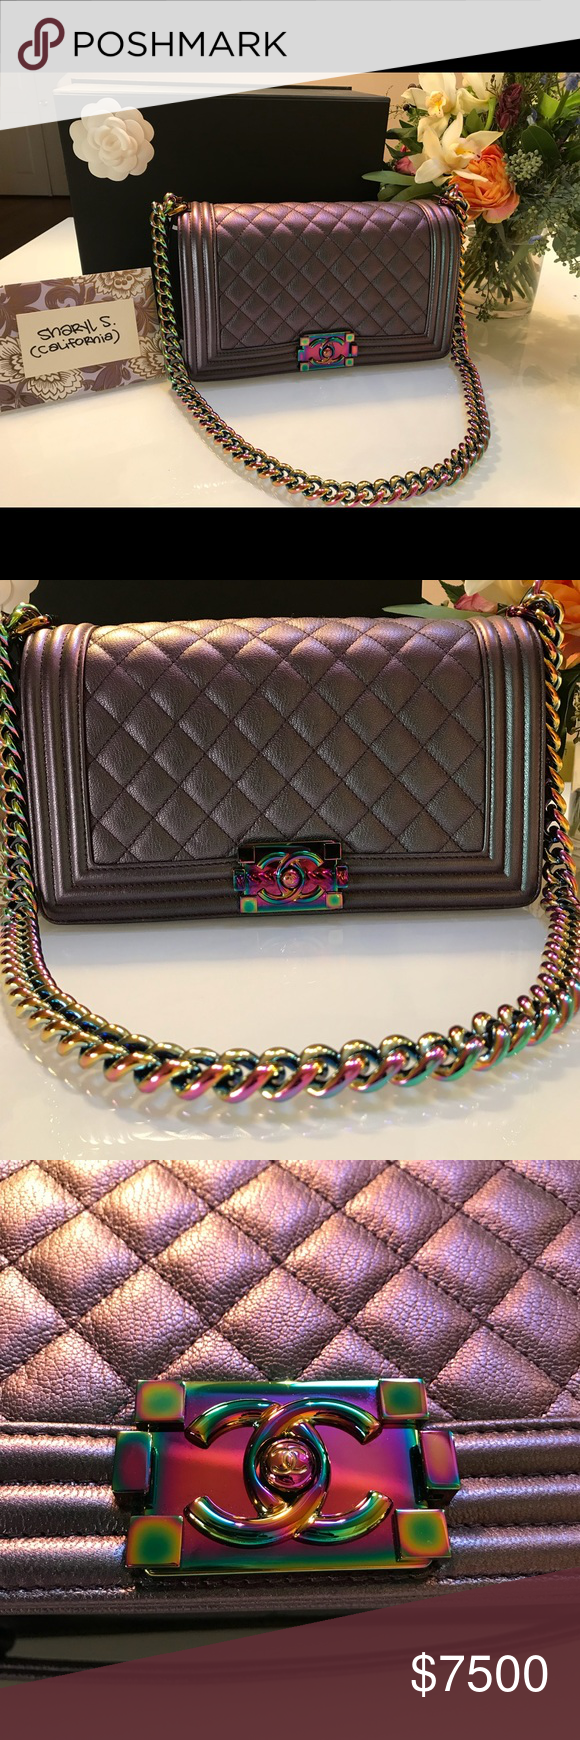 b336e64639ee Chanel Iridescent Boy Bag UNICORN ALERT SELLING PURPLE IRIDESCENT BOY BAG  IN OLD MEDIUM Comes with box, dust bag, serial sticker, care instructions.